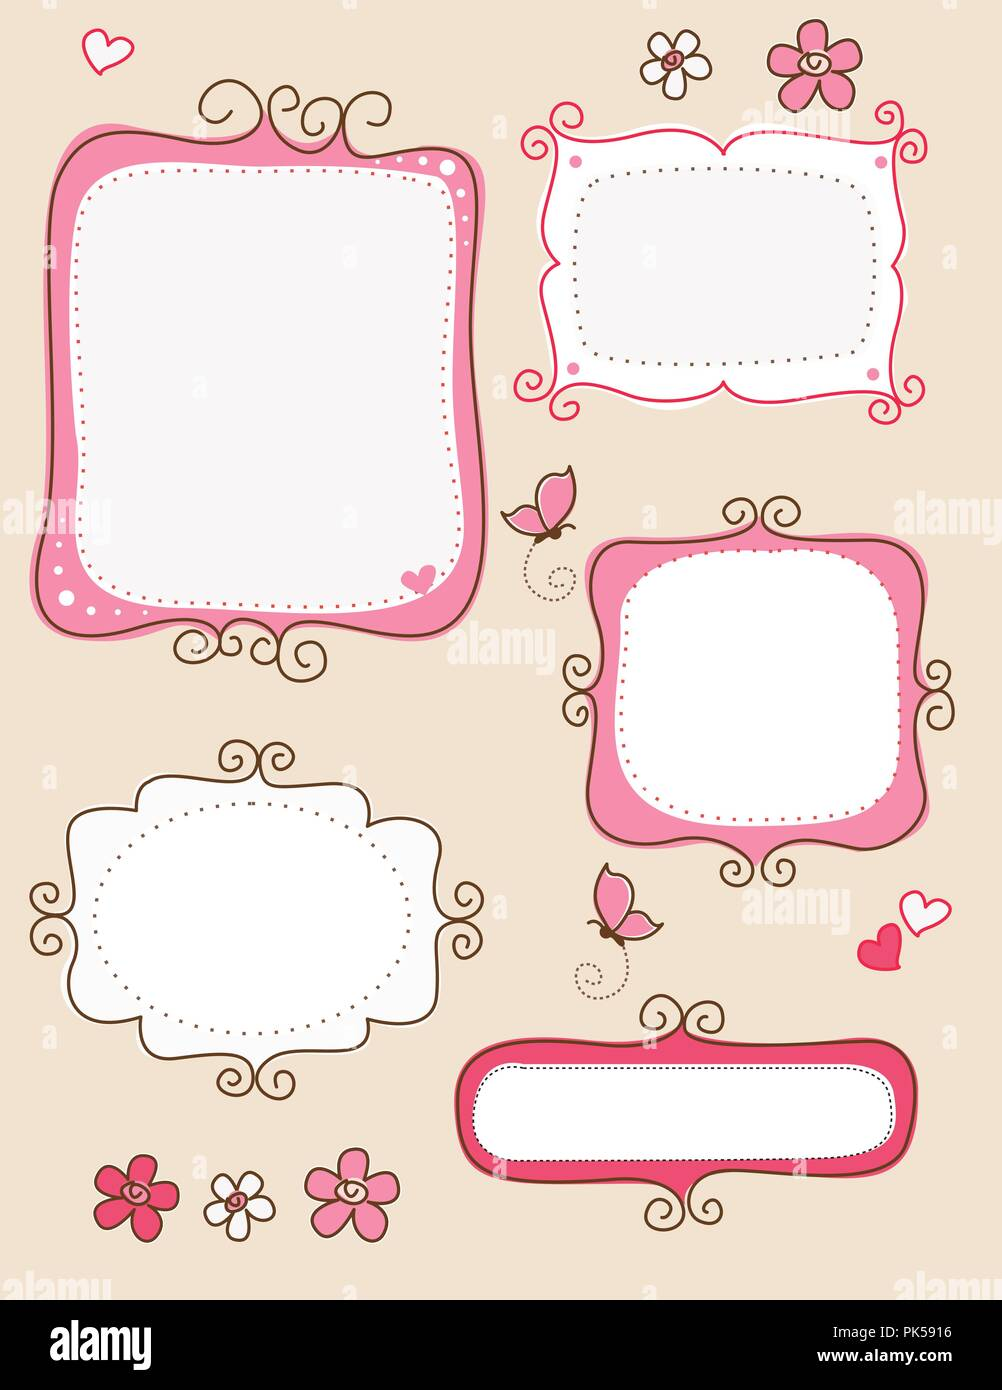 Collection of nice cute doodle frames on white background. specially for spring scrap booking - Stock Image